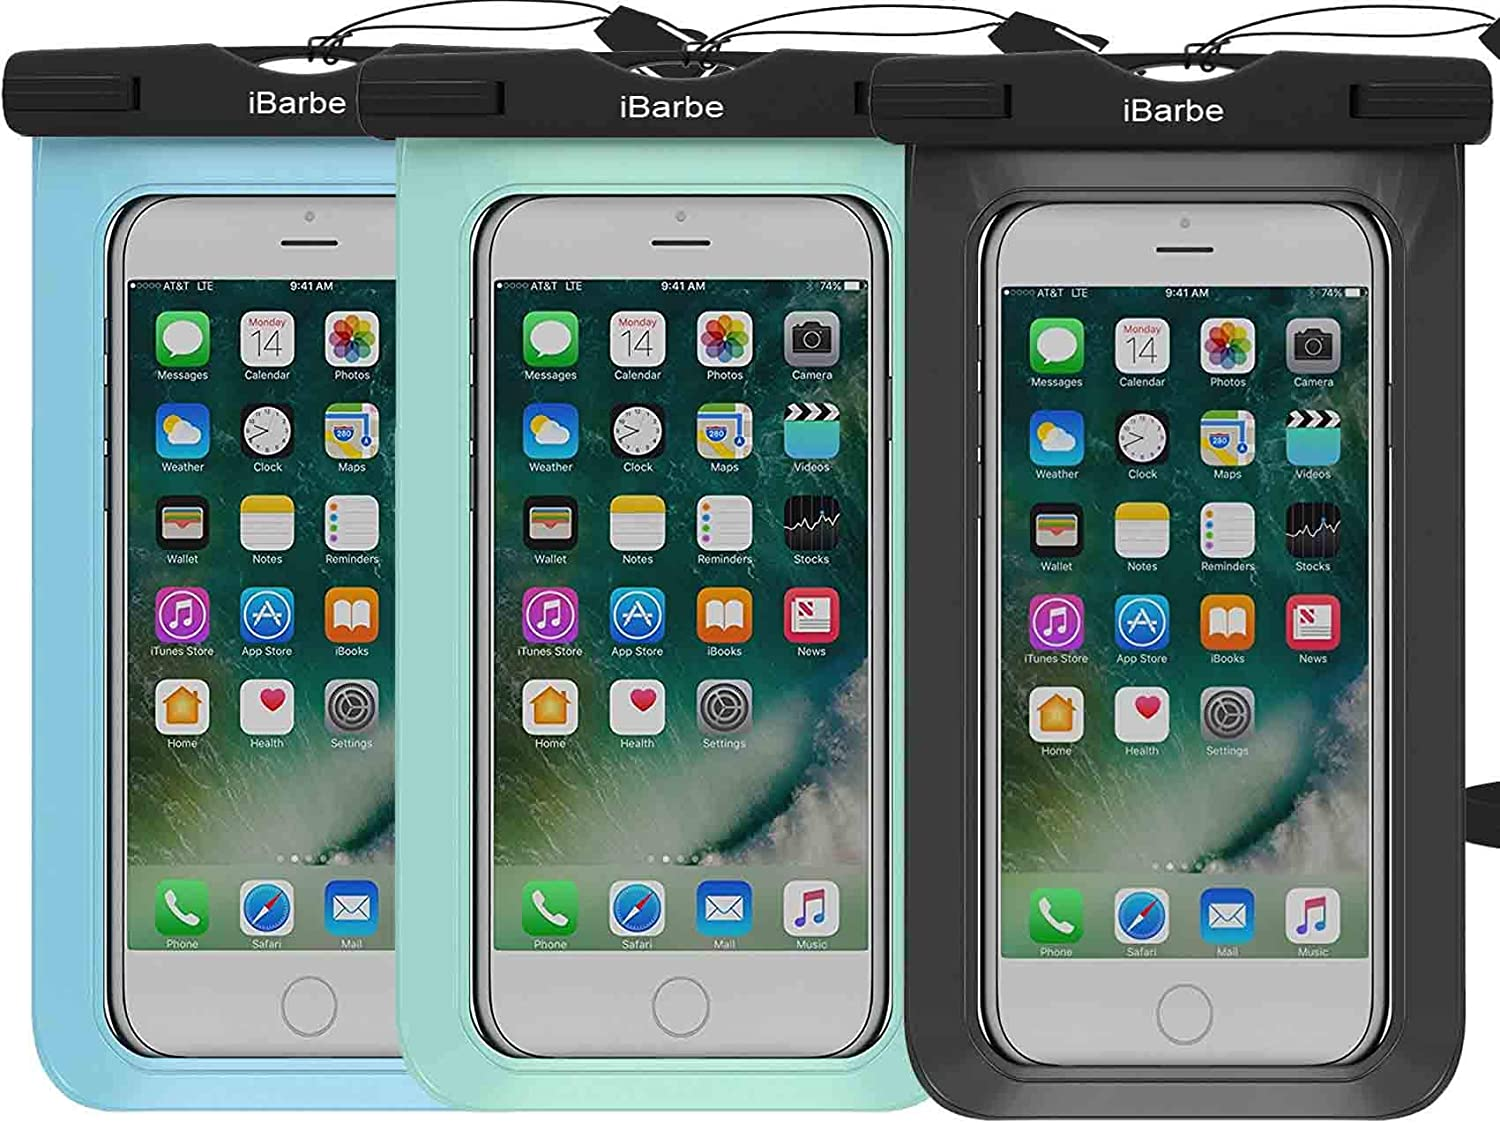 Waterproof Case,3 Pack Universal Cell Phone Dry Bag Pouch Underwater Compatible with iPhone X XR XS MAX 8 Plus 7 7 Plus 6S 6 6S Plus SE Galaxy Note s9 s8 LUS S7 S6 Edge etc.to 5.7 inch,black+blue+teal